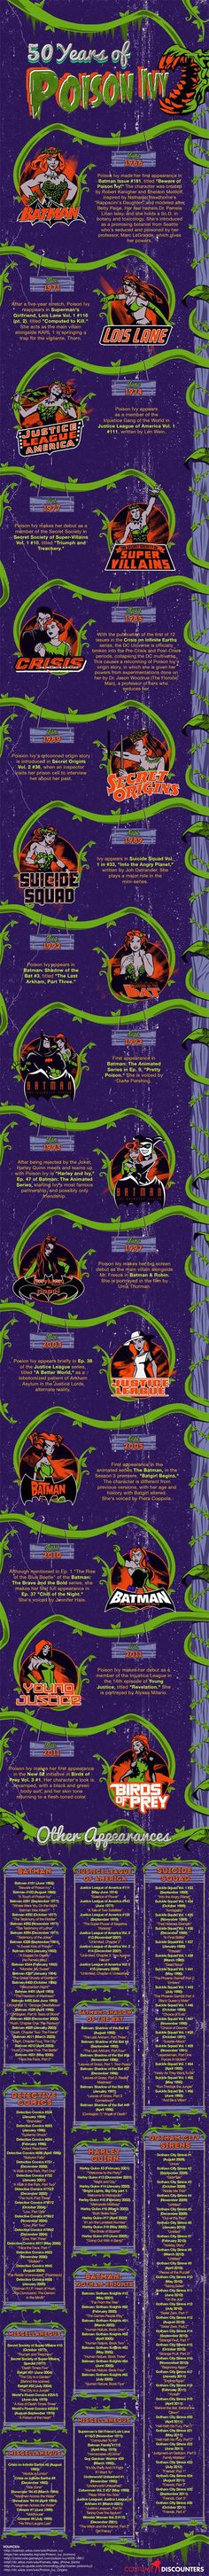 the-50-year-history-of-poison-ivy-gets-a-inforgraphic-breakdown2